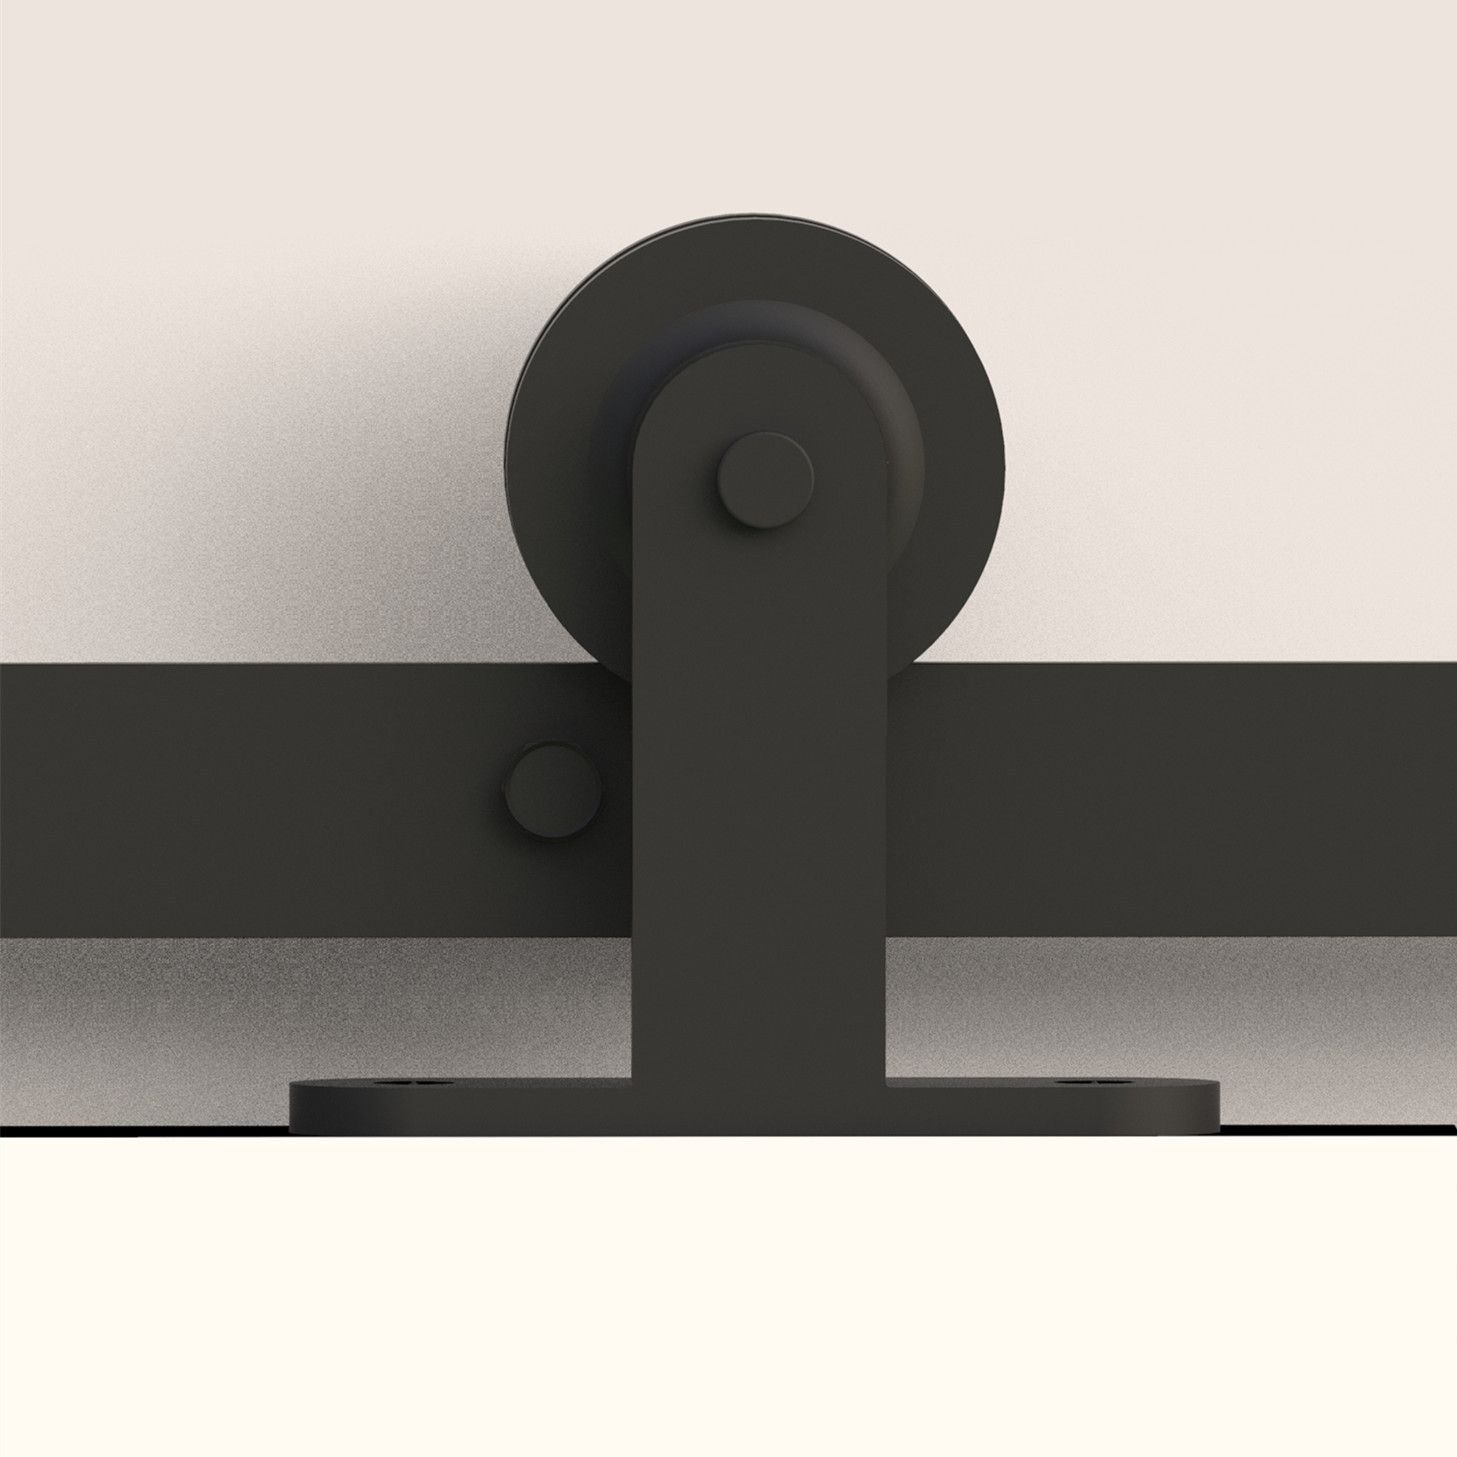 Fullhouse Rustic Black Single Sliding Barn Door Hardware Kit,18FT Track T-Shape Design for Garage Industrial Strength Hangers Closet Interior and Exterior Door Use Quiet and Smooth Sliding